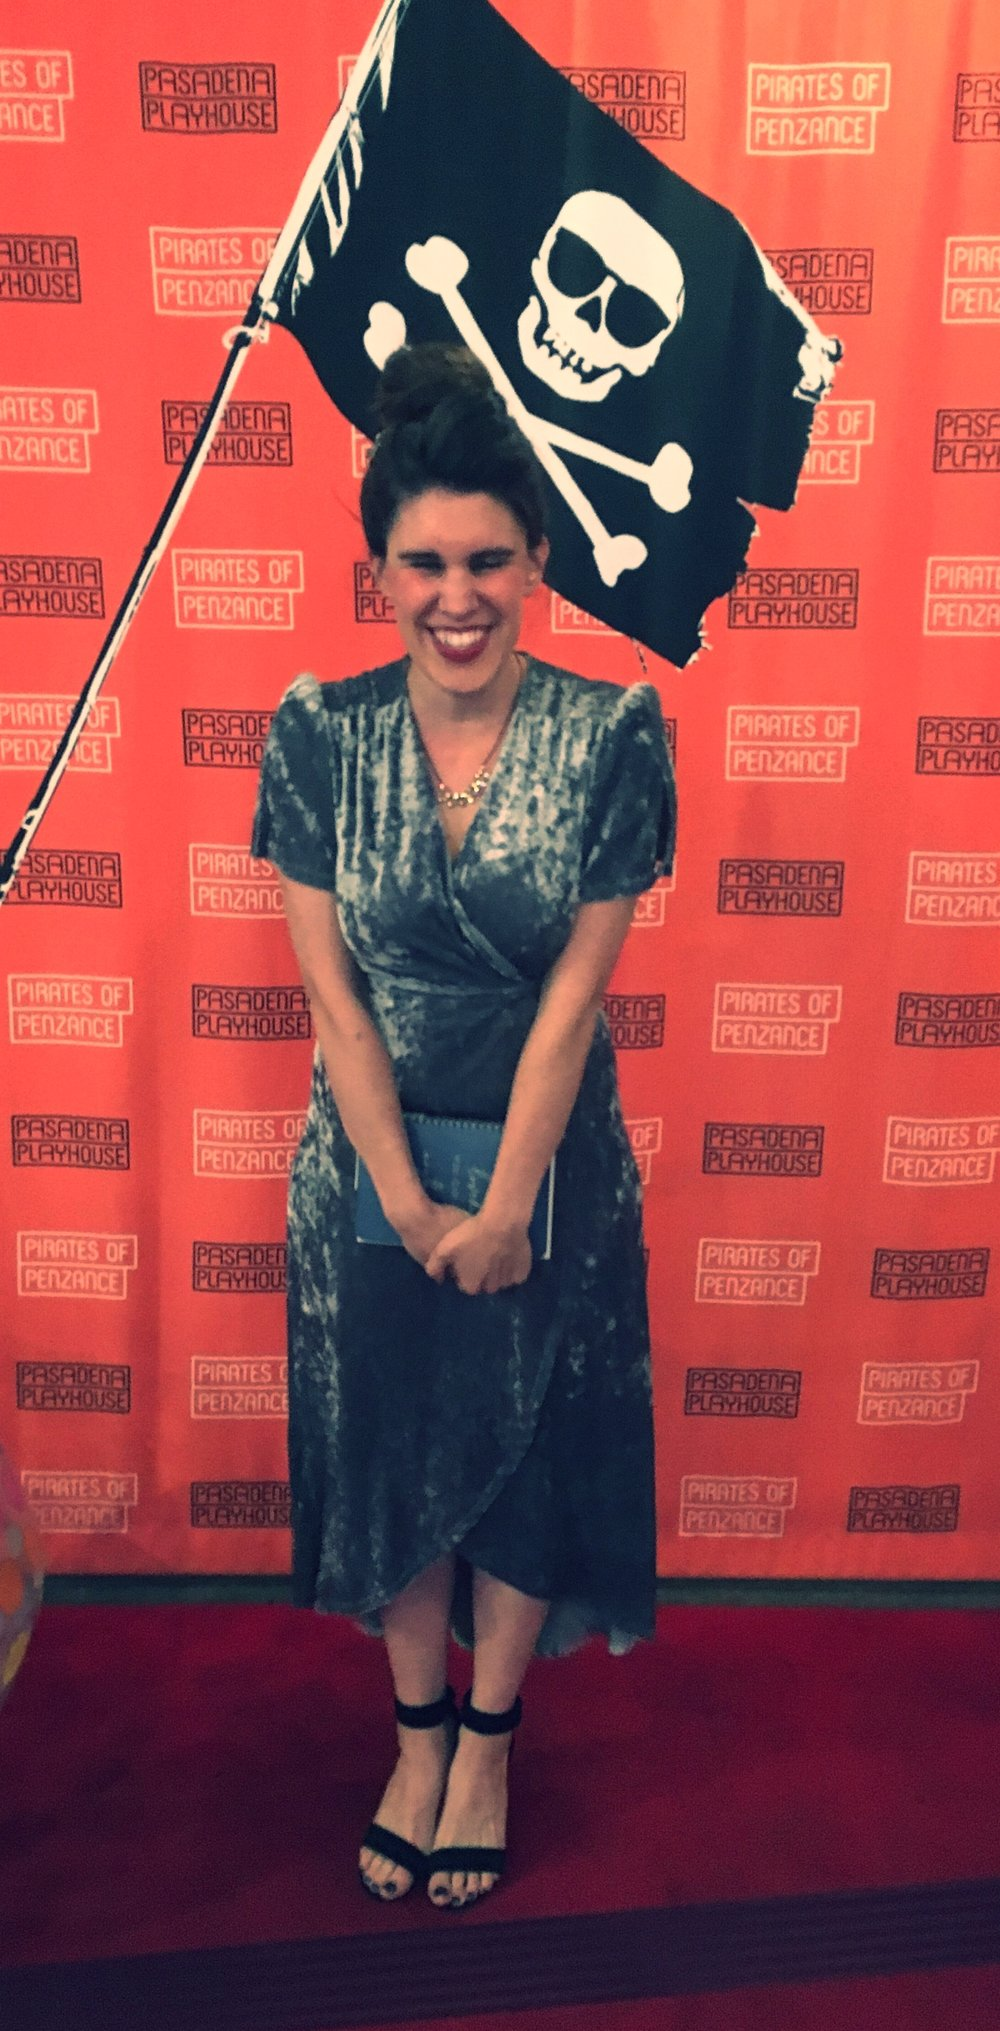 Wench'n it on the red carpet. (Insert joke about my pirate's booty)